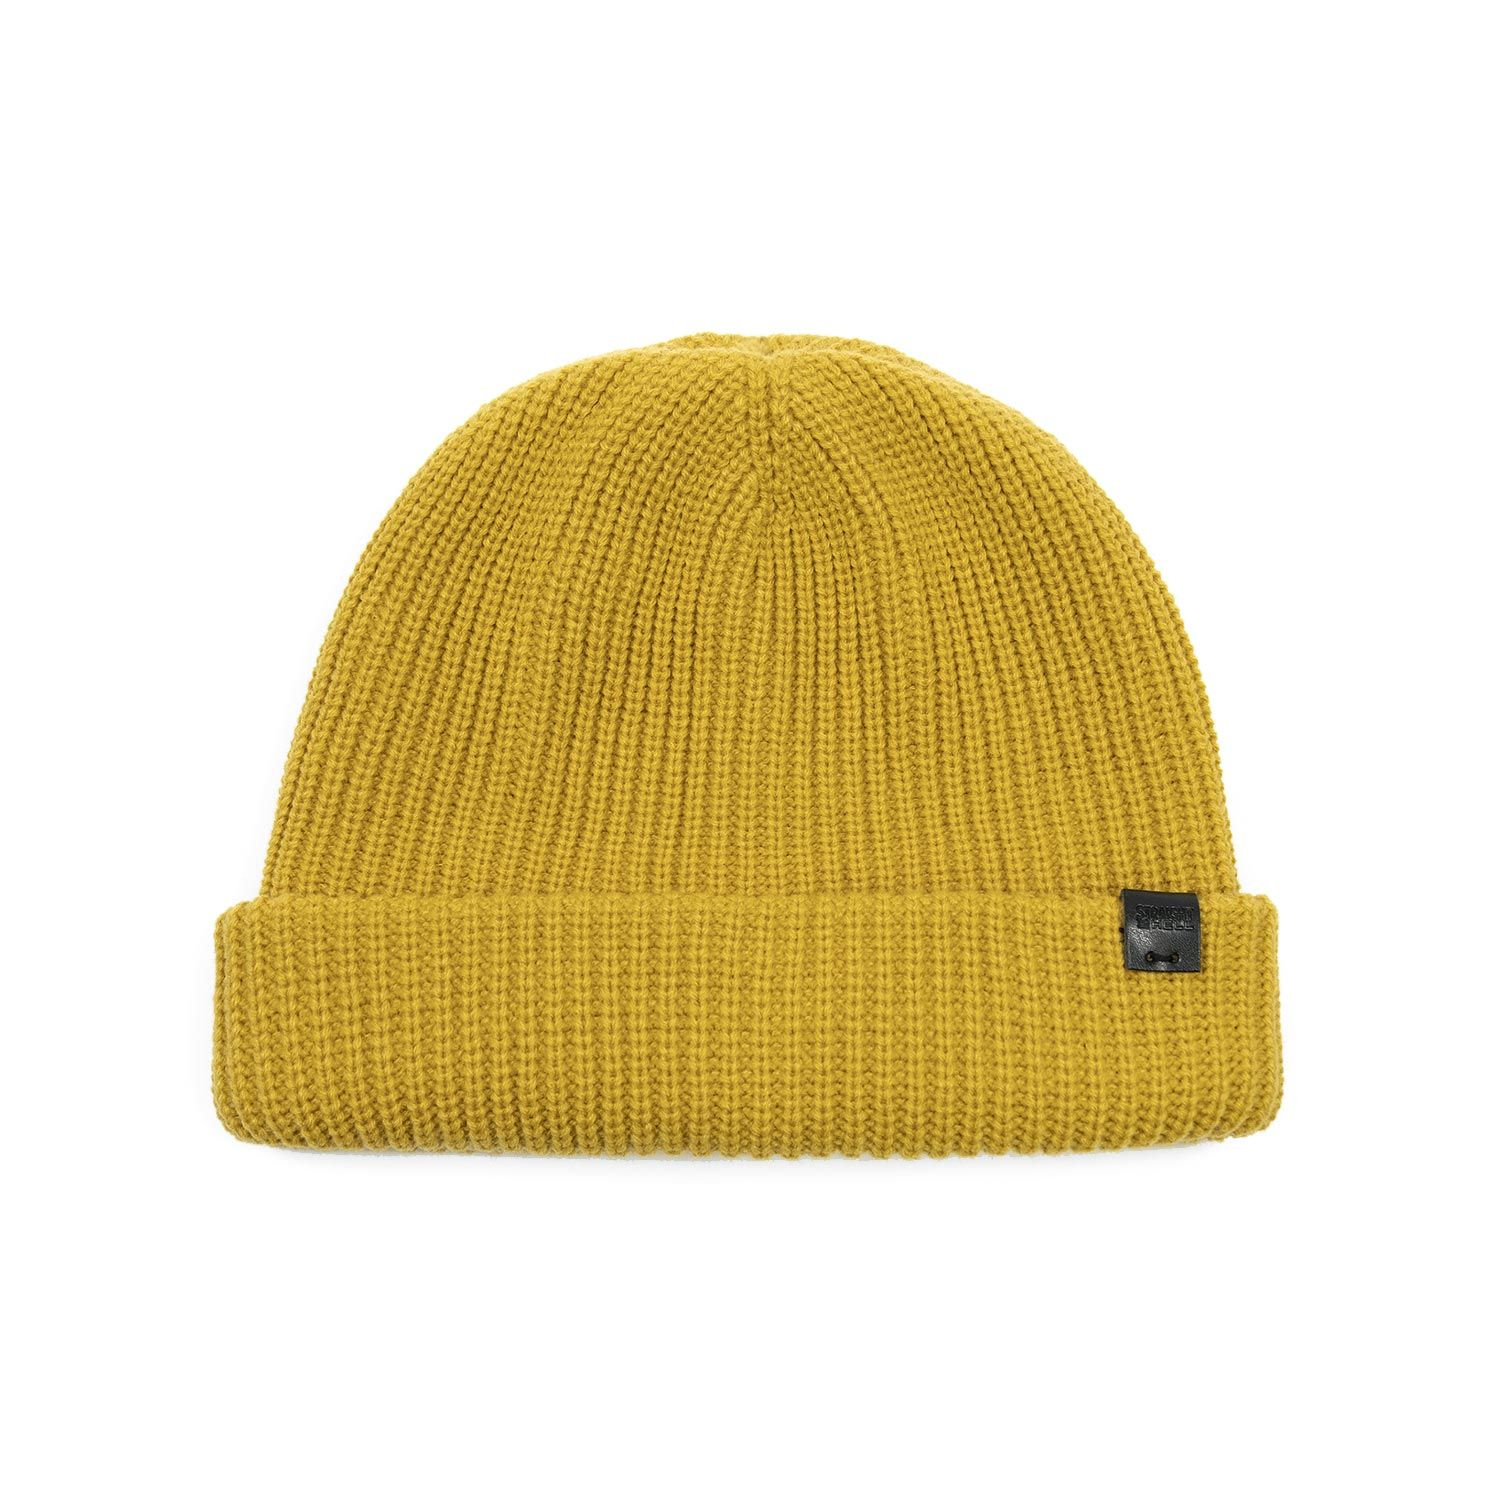 60f4049d00d Bronson – Mustard Yellow Beanie in 2019